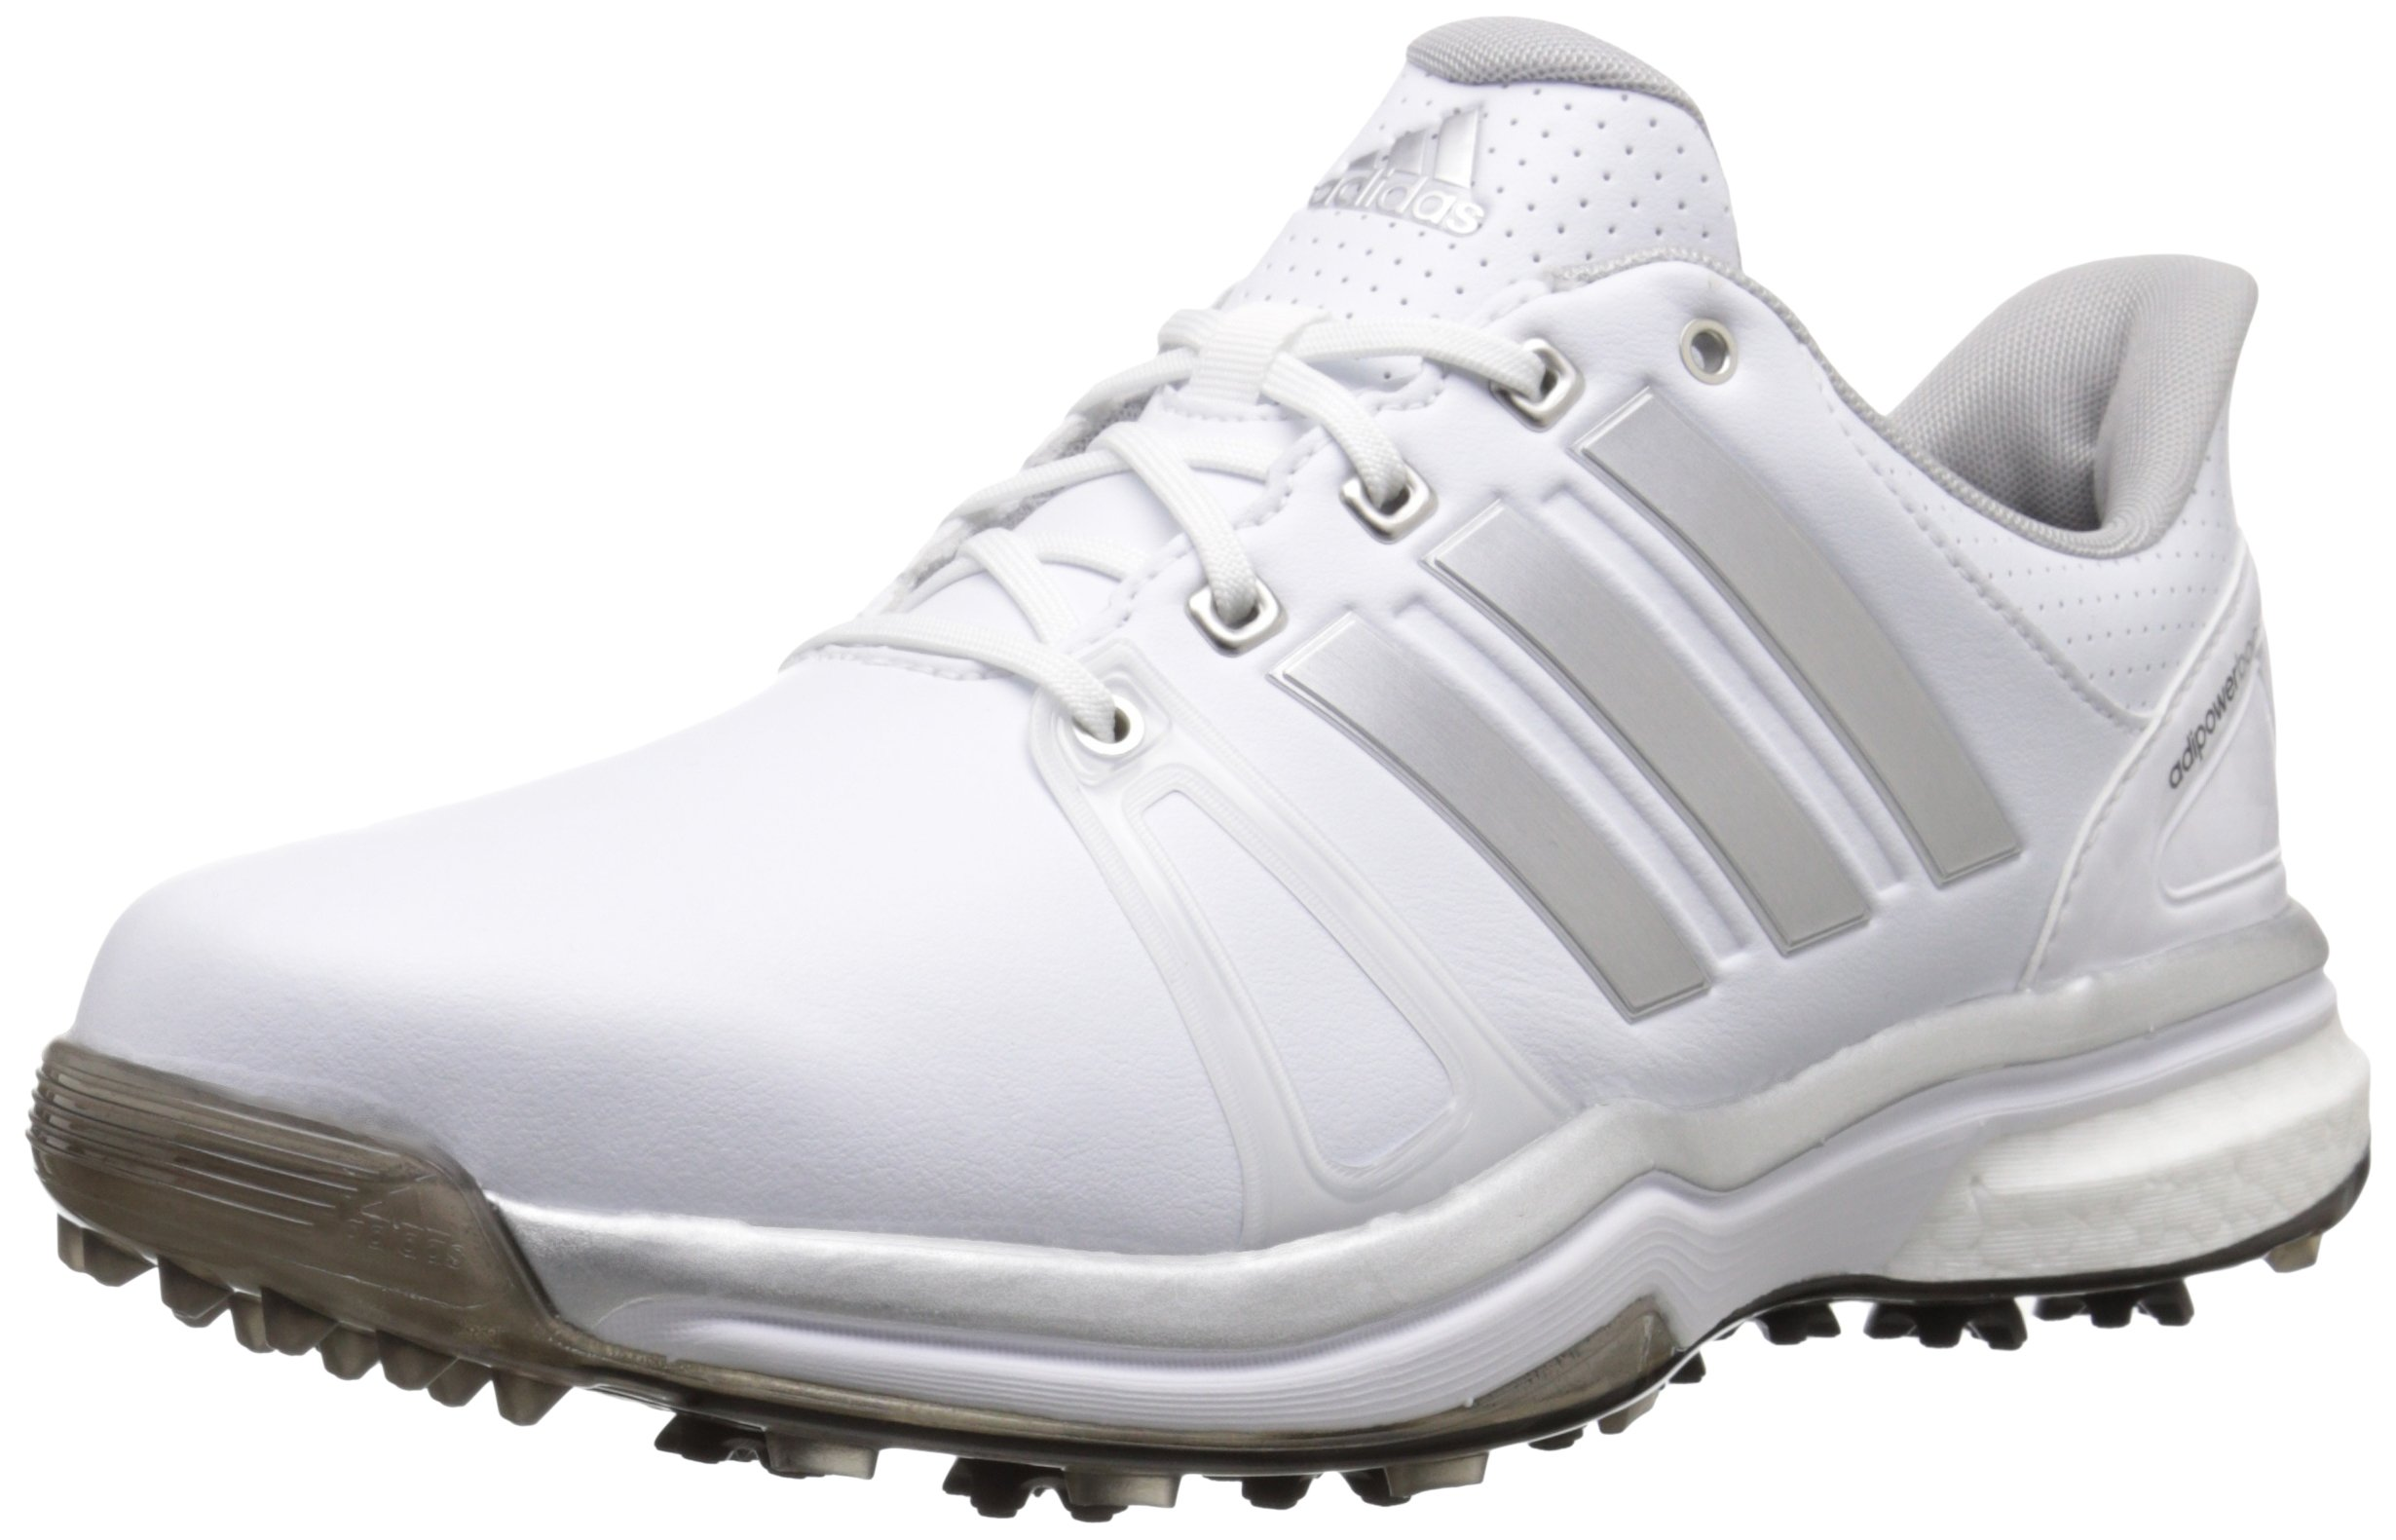 adidas Men's Adipower Boost 2 Golf Cleated, FTWR White/Silver Metallic/Core Black, 11 M US by adidas